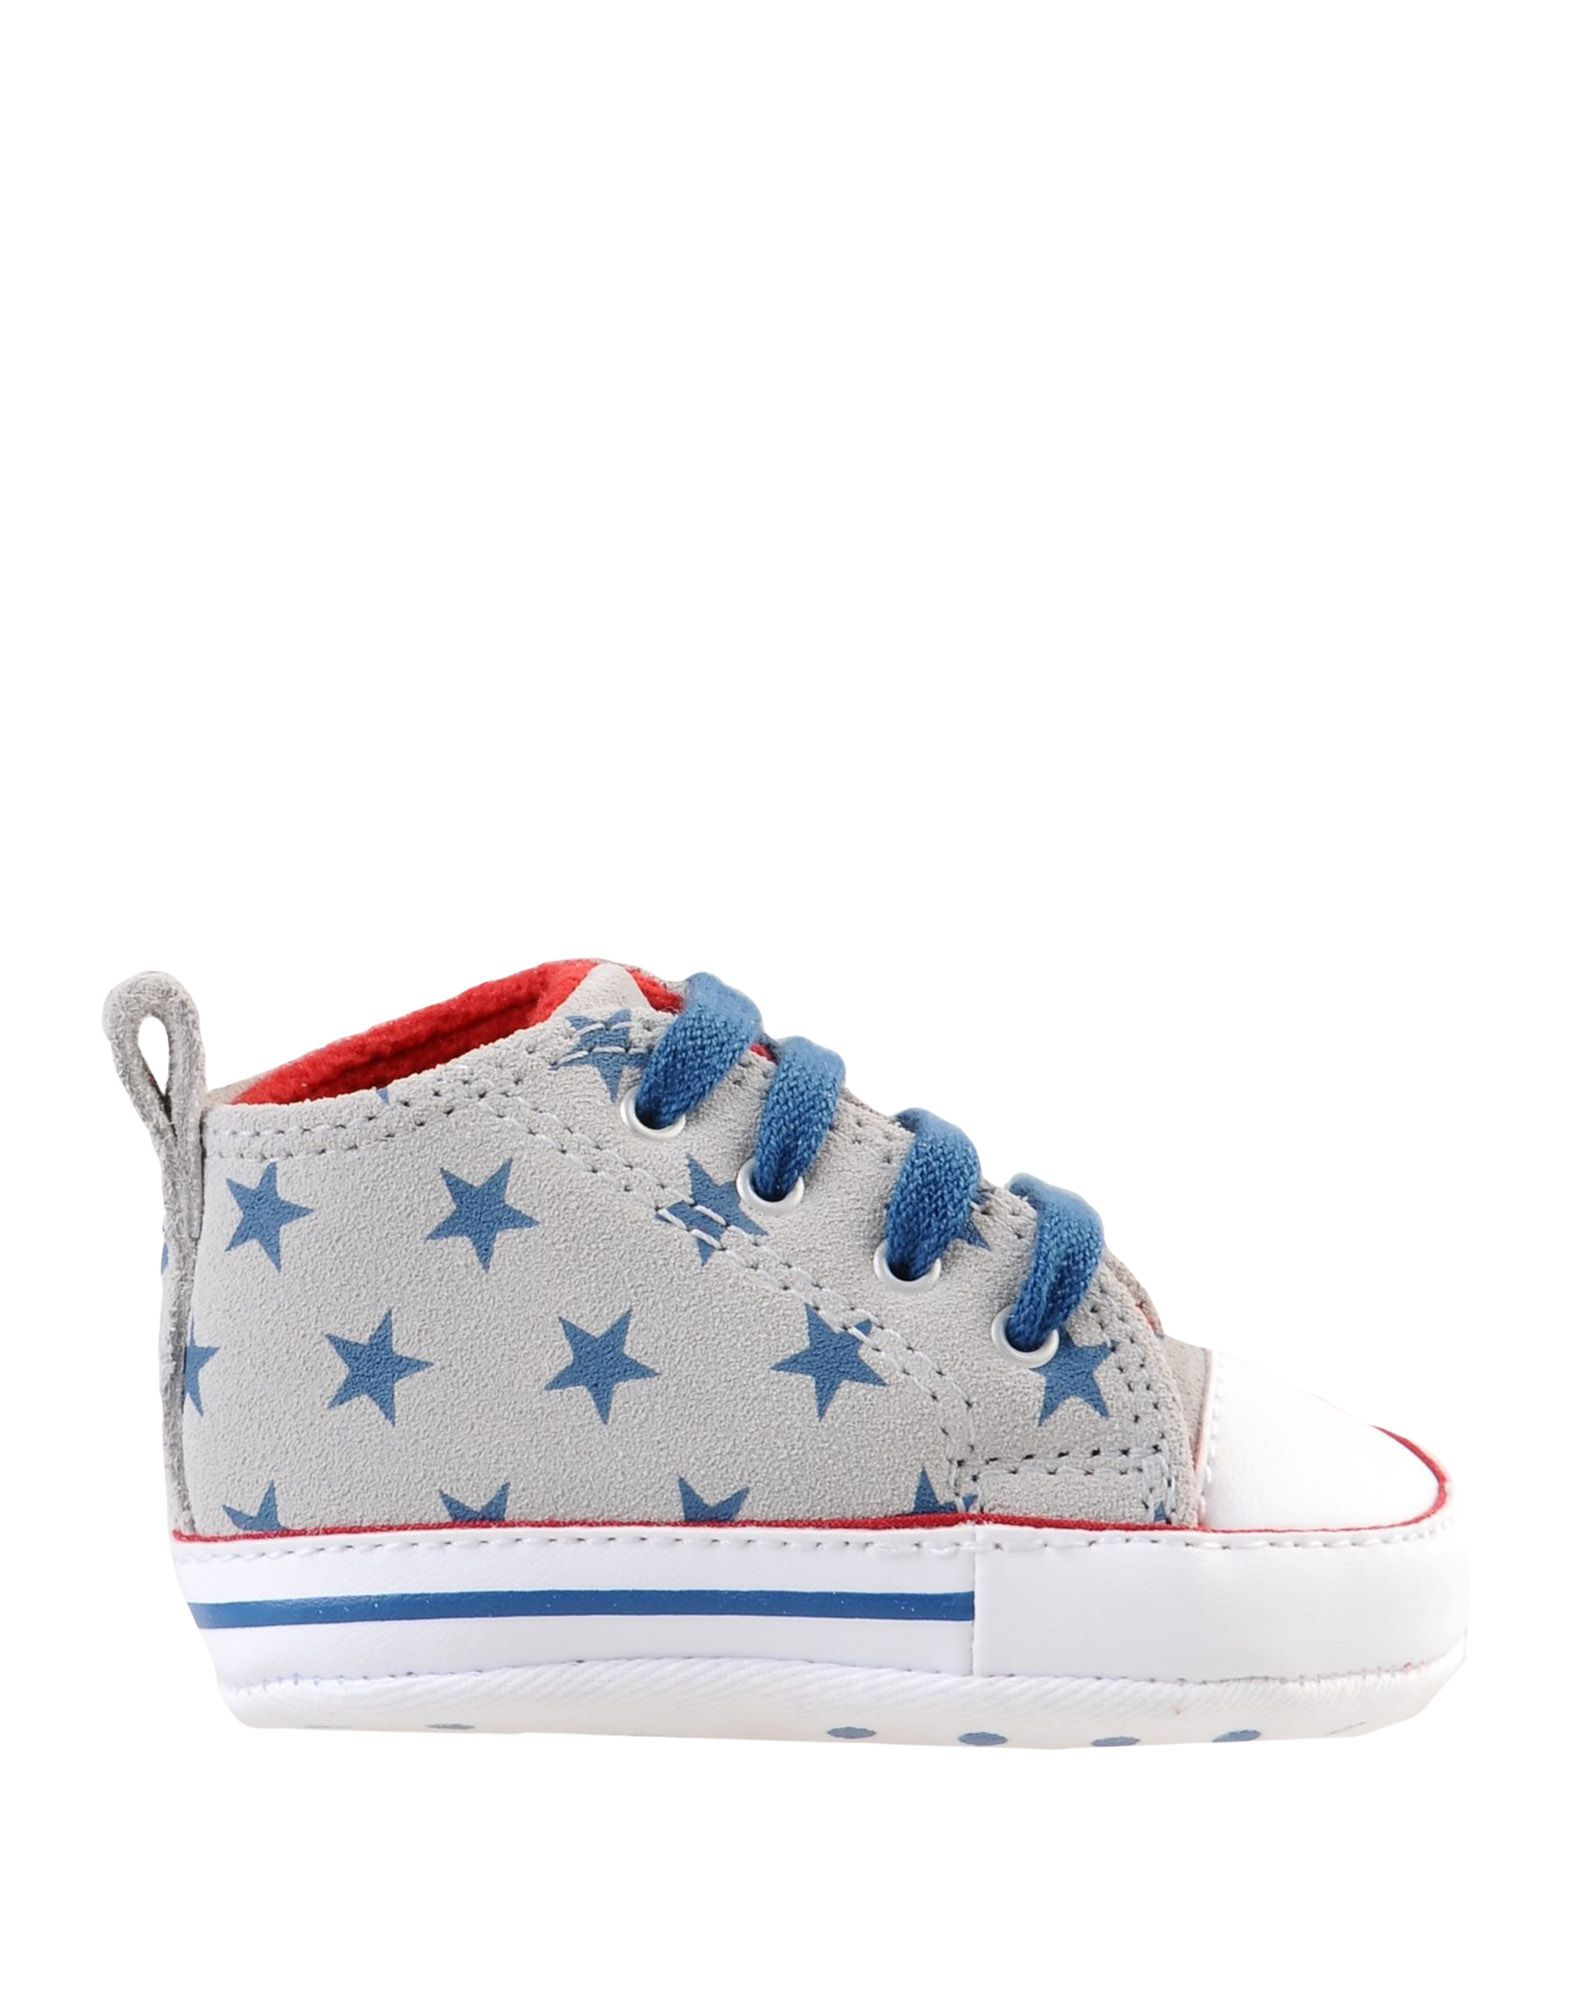 converse all star bimba 23 24